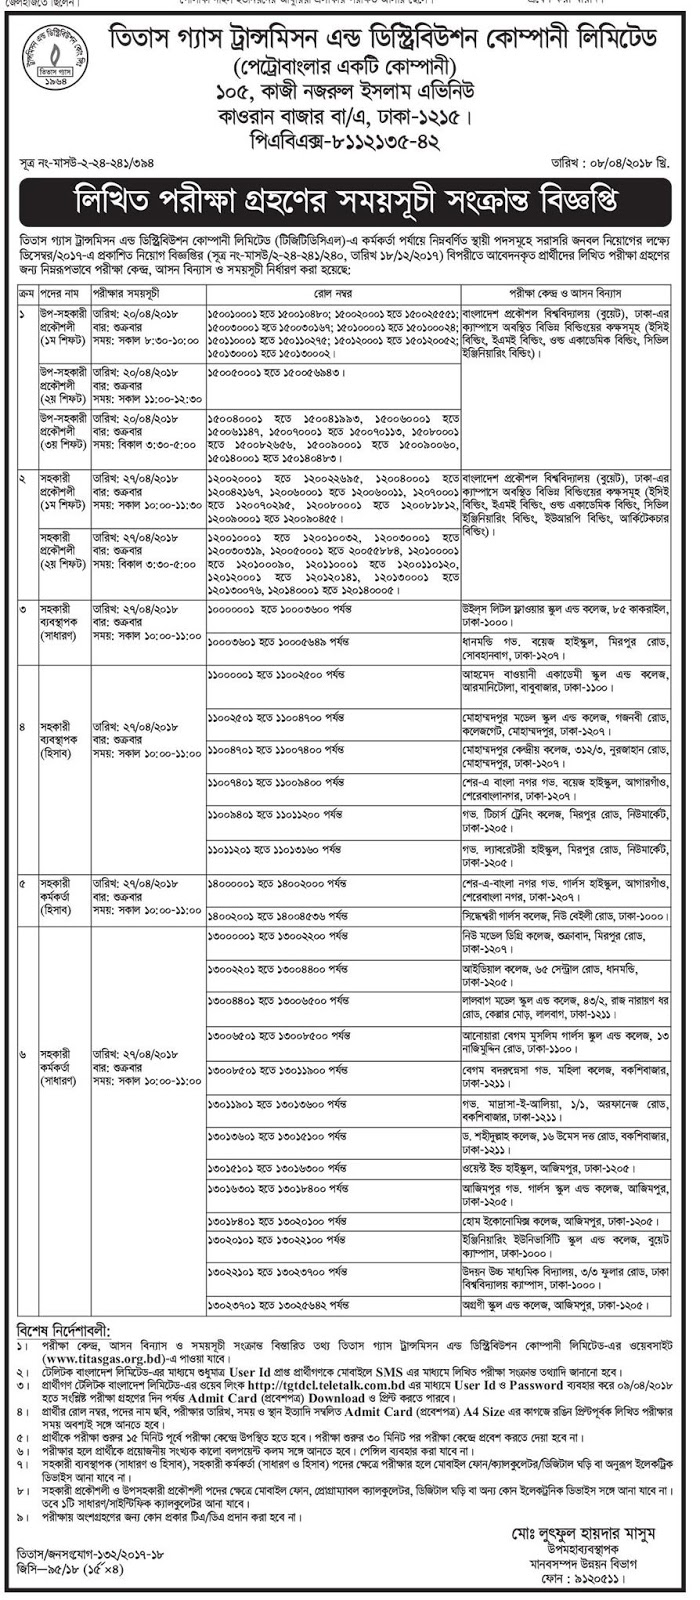 Titas Gas Transmission and Distribution Company Limited (TGTDCL) Job Seat Plan and Exam Center